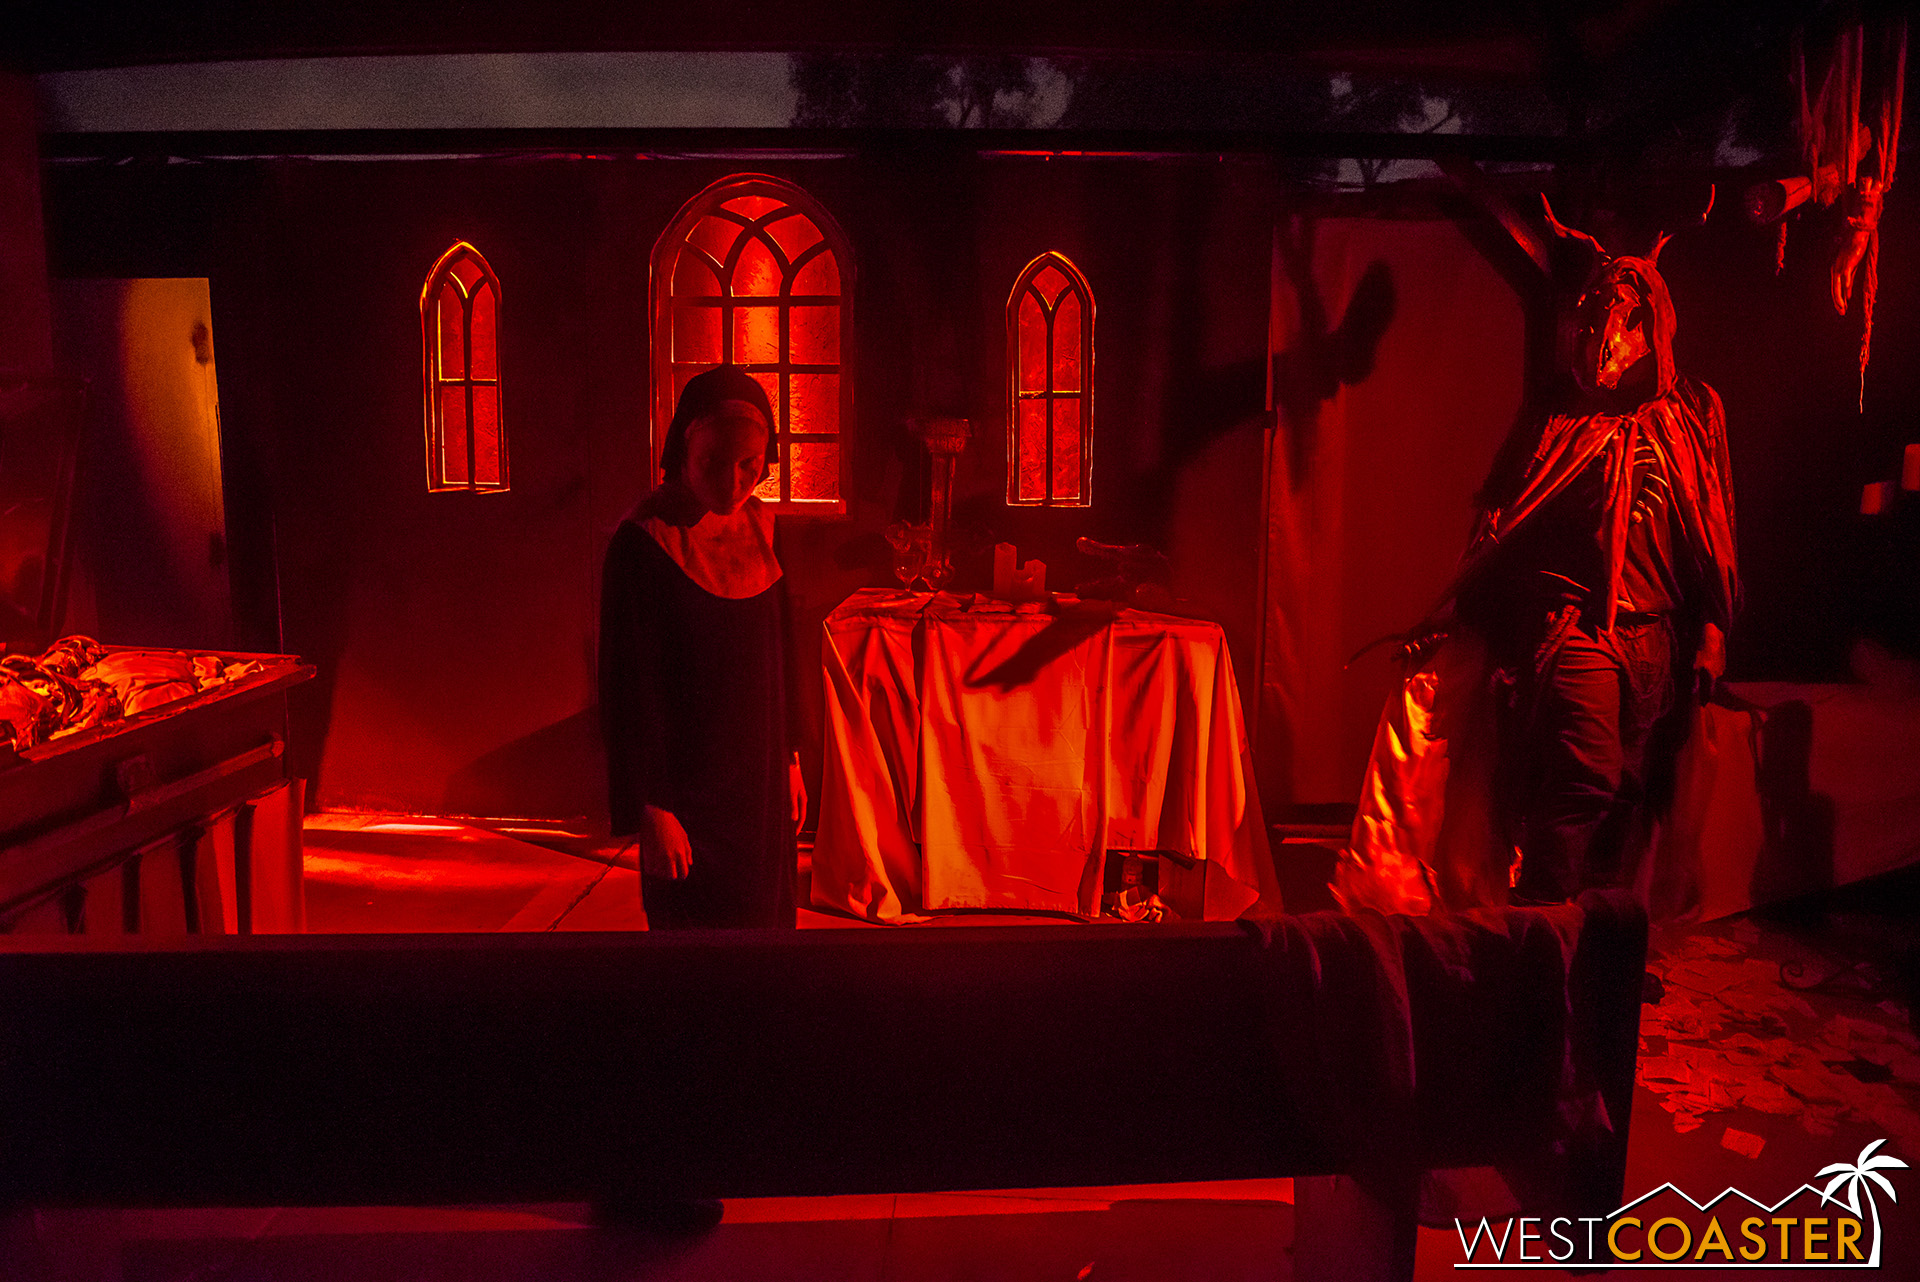 This spooky chapel featured a highly theatrical scene with synchronized lighting and actions.  It was one of the best moments of the entire event.